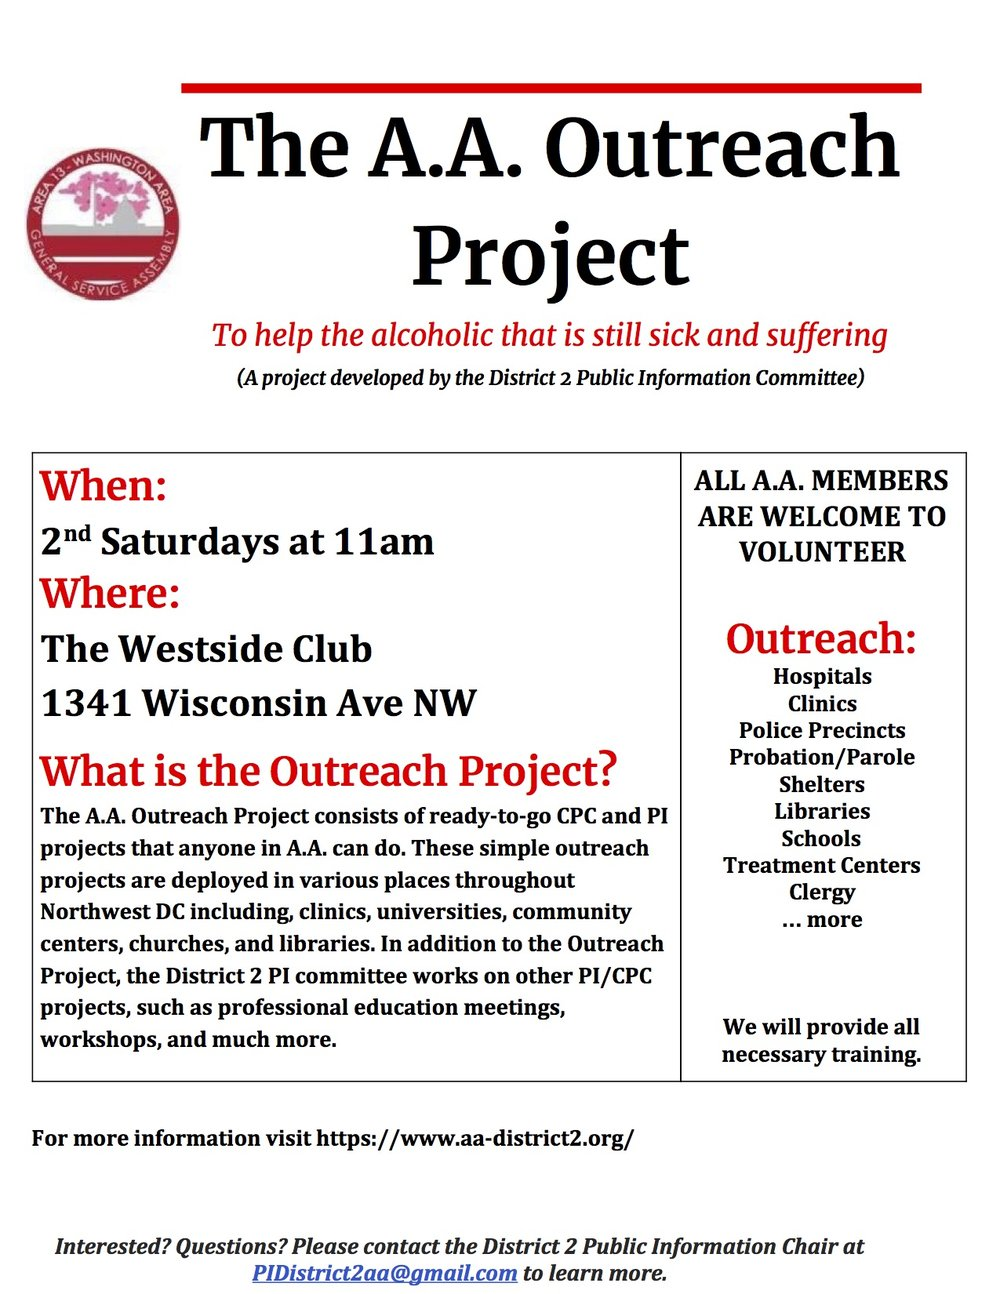 AA Outreach Project Flyer.jpg